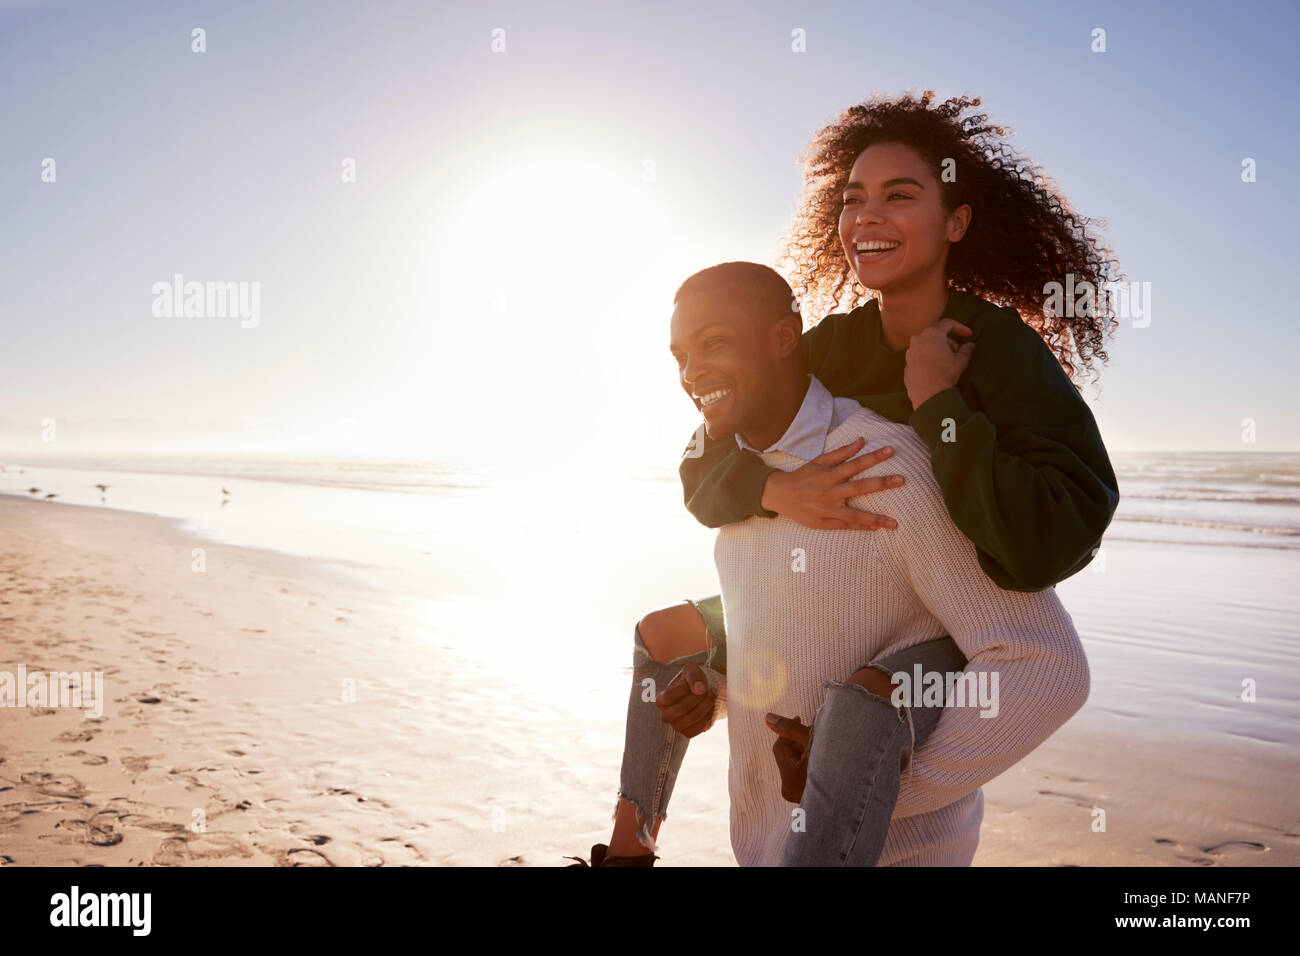 Man Giving Woman Piggyback On Winter Beach Vacation - Stock Image